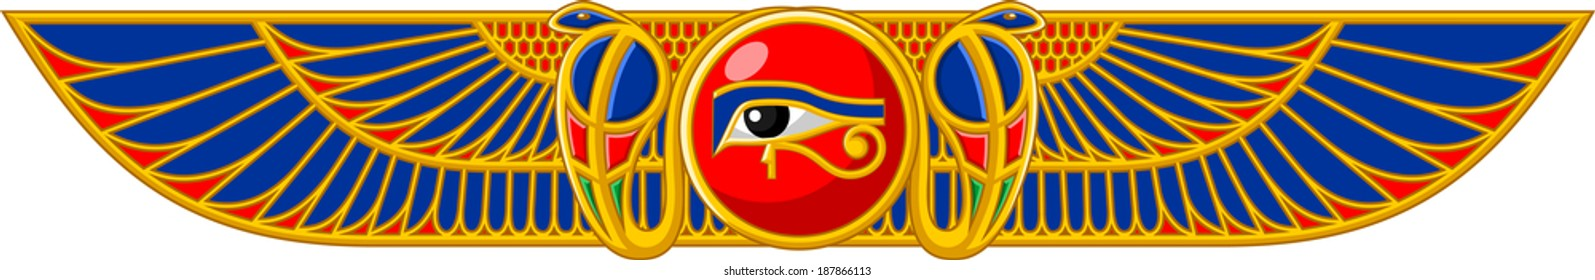 Illustration of ancient Egyptian sun with snakes and wings isolated on white background.